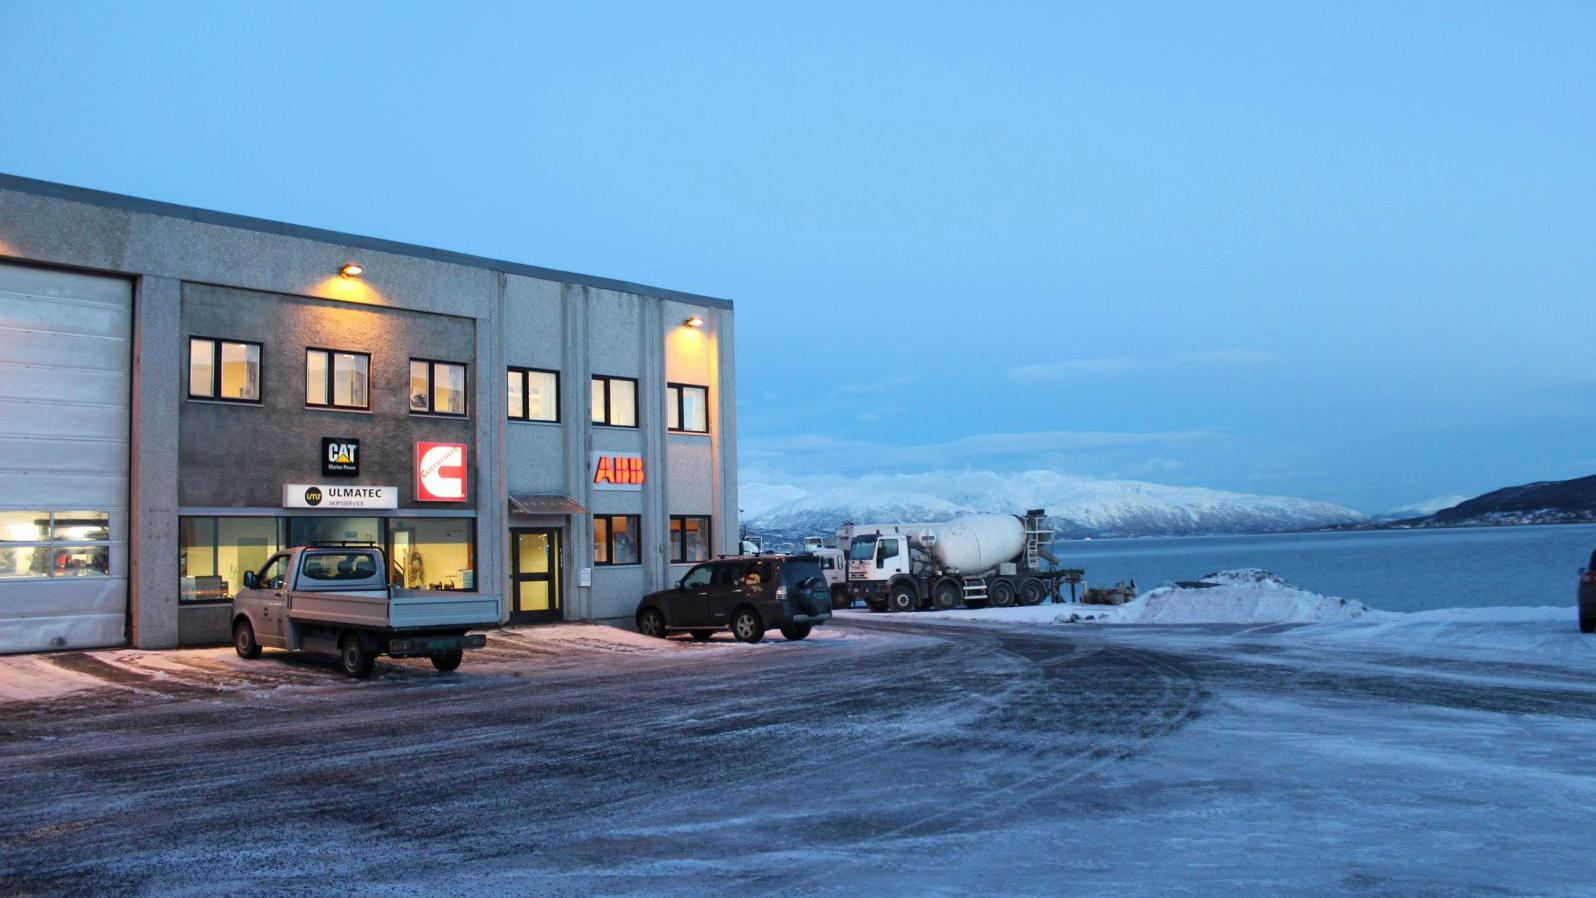 ABB Turbocharging's New Service Point in Norway